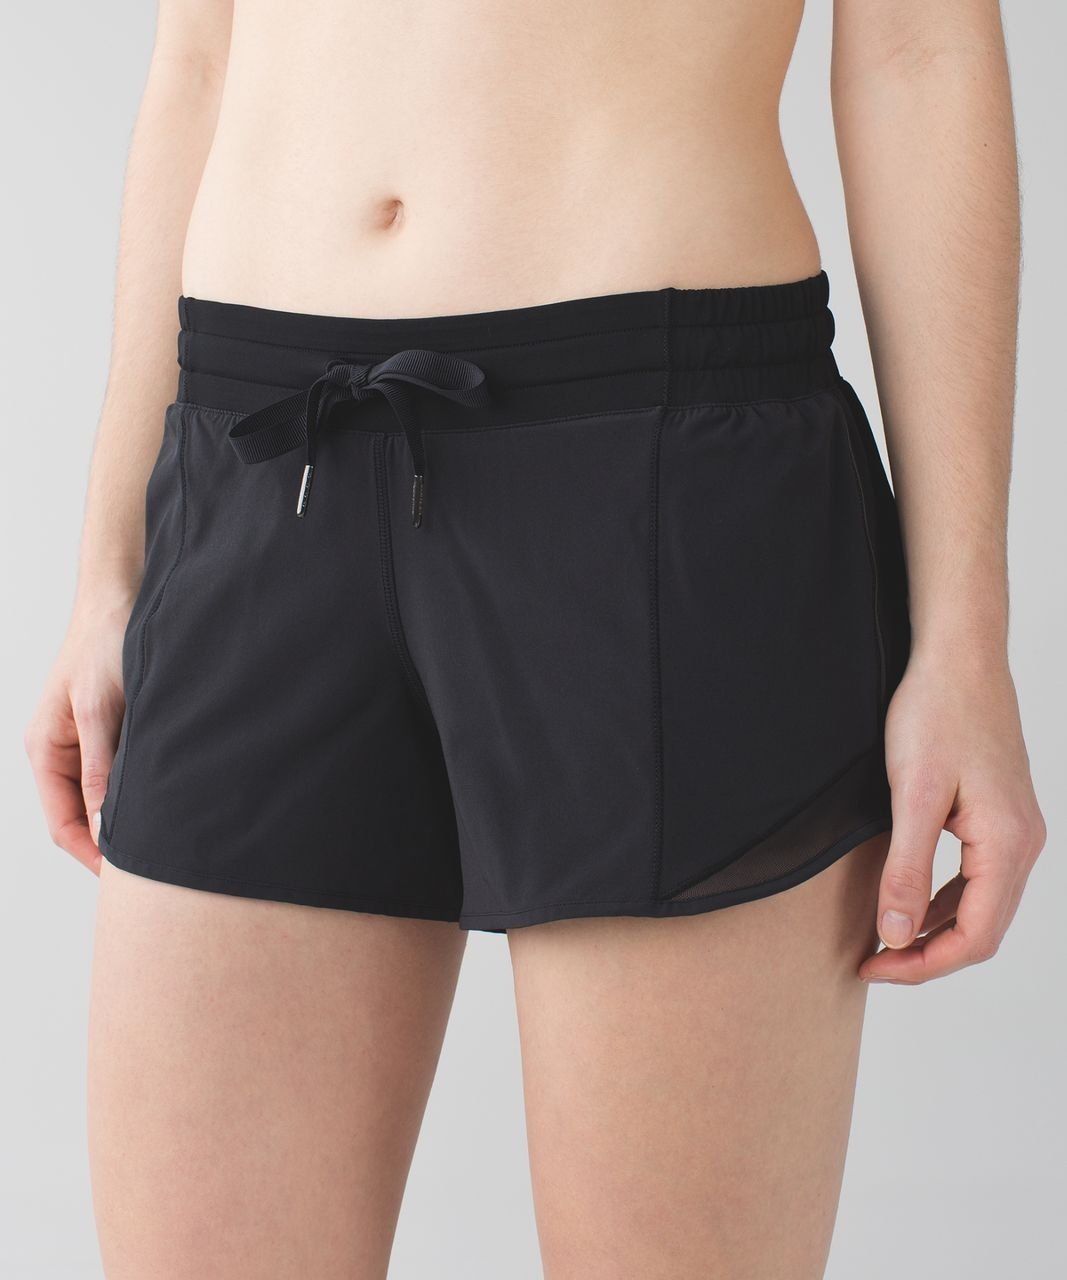 Lululemon Hotty Hot Short *Long - Black